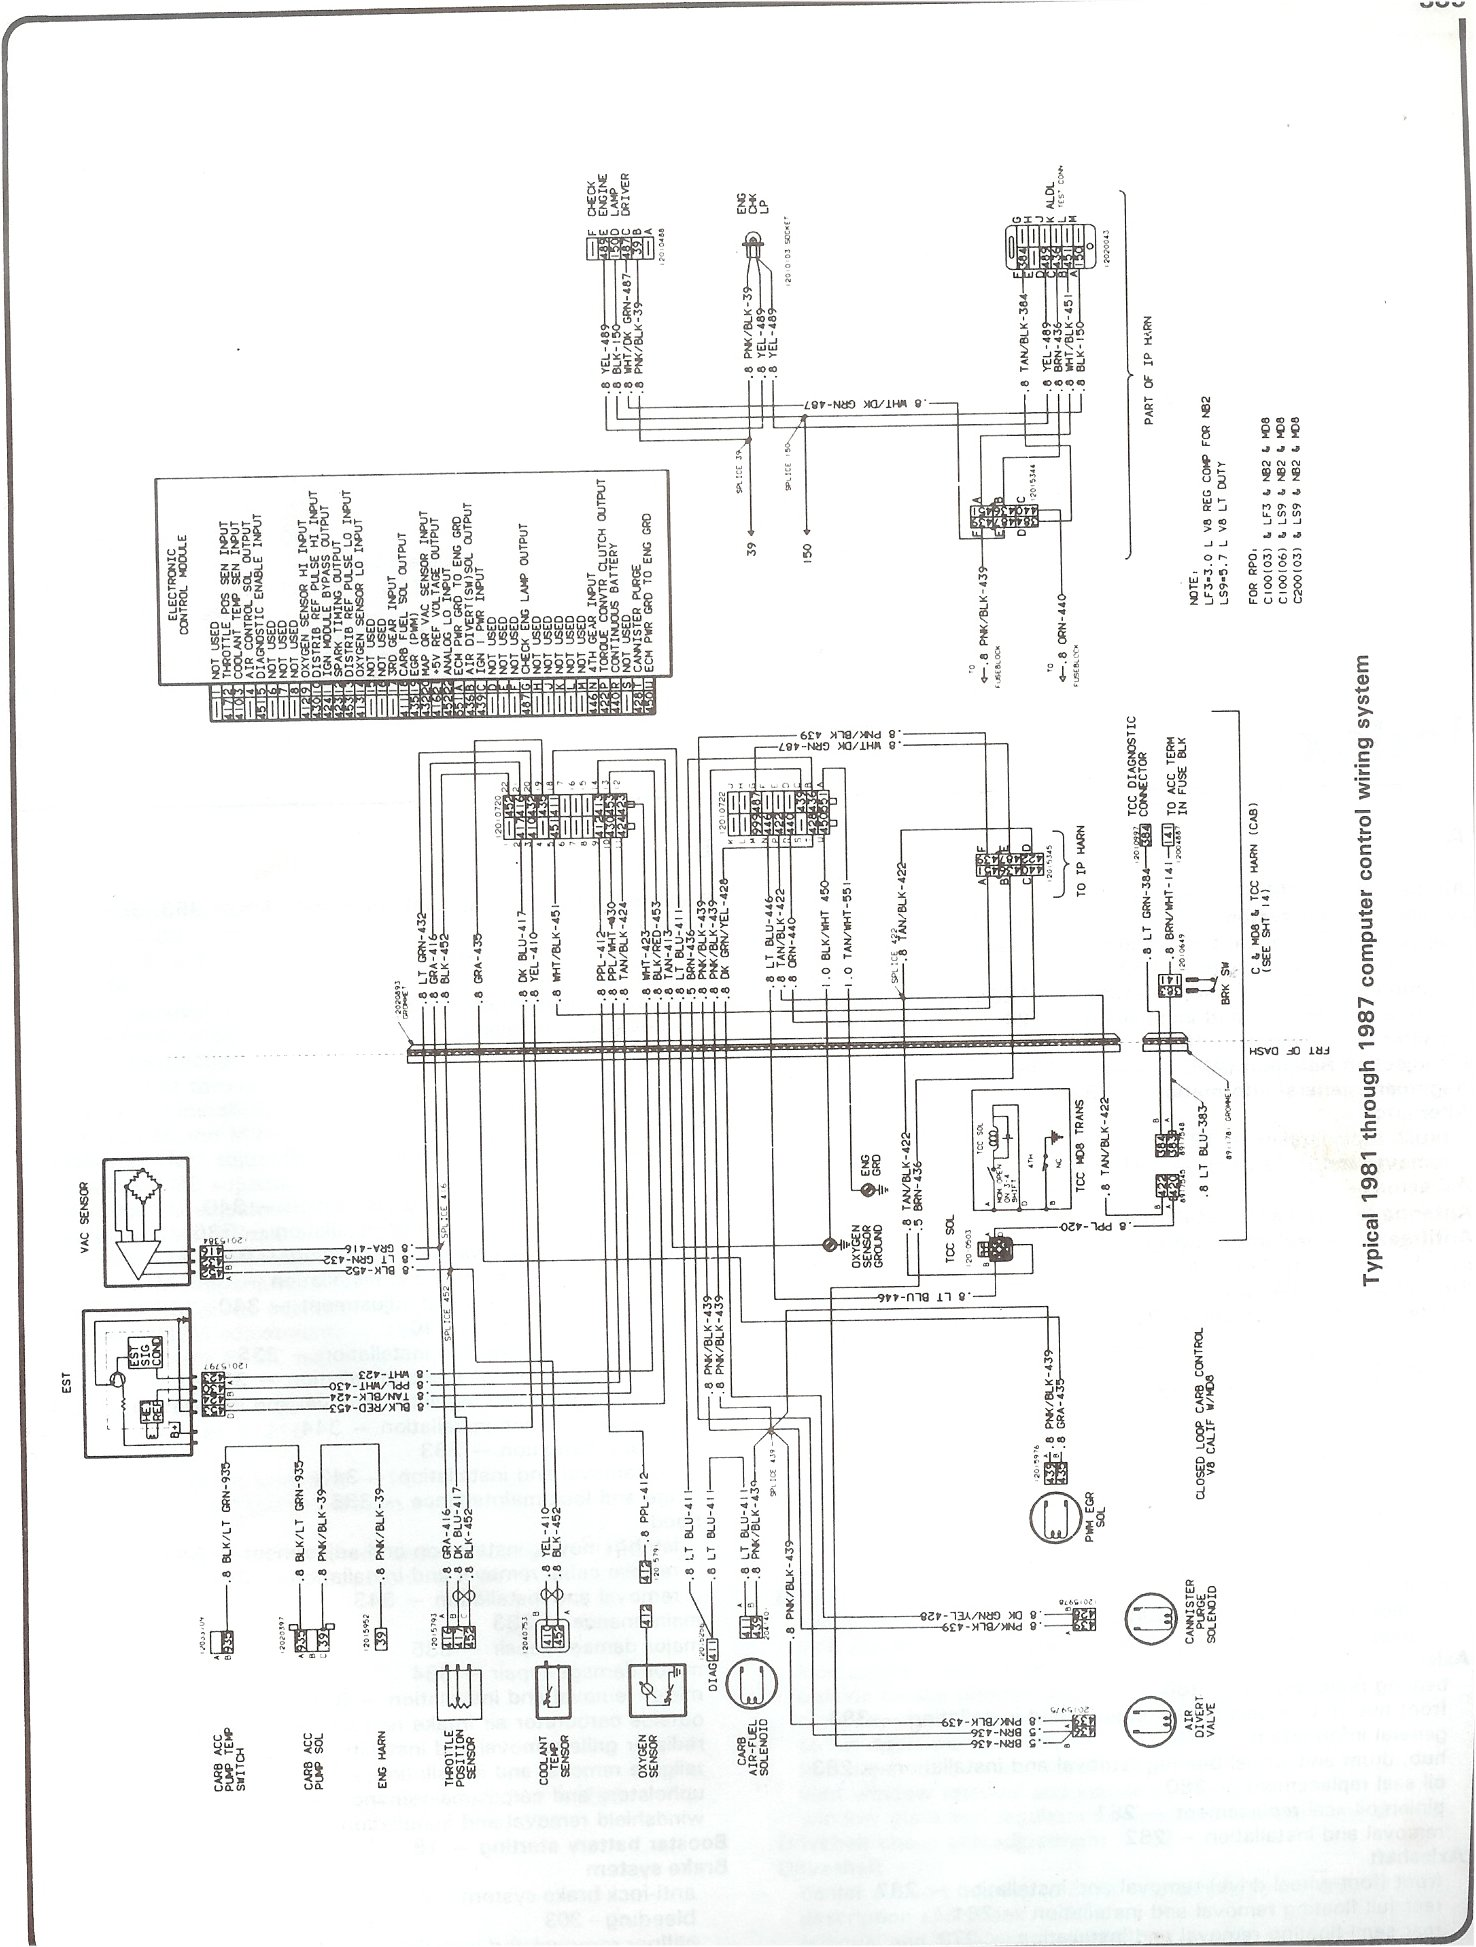 4 3 Vortec Engine Wiring Harness | Wiring Liry  L Vortec Engine Component Diagram on mercruiser 3.0 engine diagram, fuel pressure regulator diagram, gm 400 transmission diagram, mercruiser 4.3l engine diagram, inline engine diagram, 2000 chevy blazer spark plug diagram, 4.3 v6 firing order diagram, 3800 3.8 chevy engine diagram, 4 cylinder engine diagram, engine lifter diagram, 4.3l firing order diagram, piston engine diagram, toyota 22r engine diagram, gm iron duke engine diagram, diesel engine diagram, six stroke engine diagram, chevy 4.2l engine diagram, 3.1 liter gm engine diagram, overhead valve engine diagram, 5.7 hemi engine diagram,